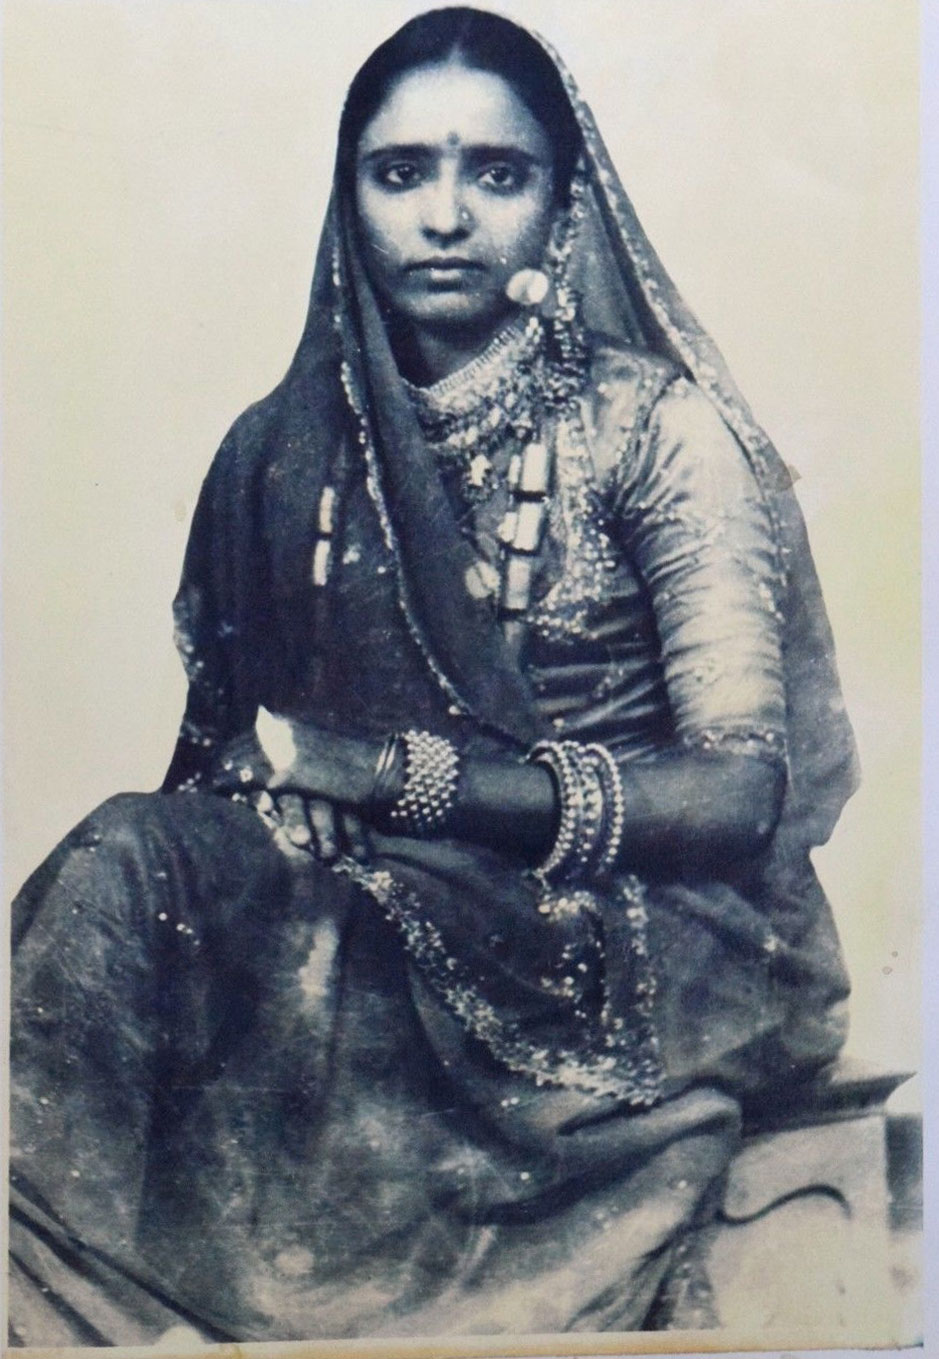 Indian Lady in Sari and Ornaments